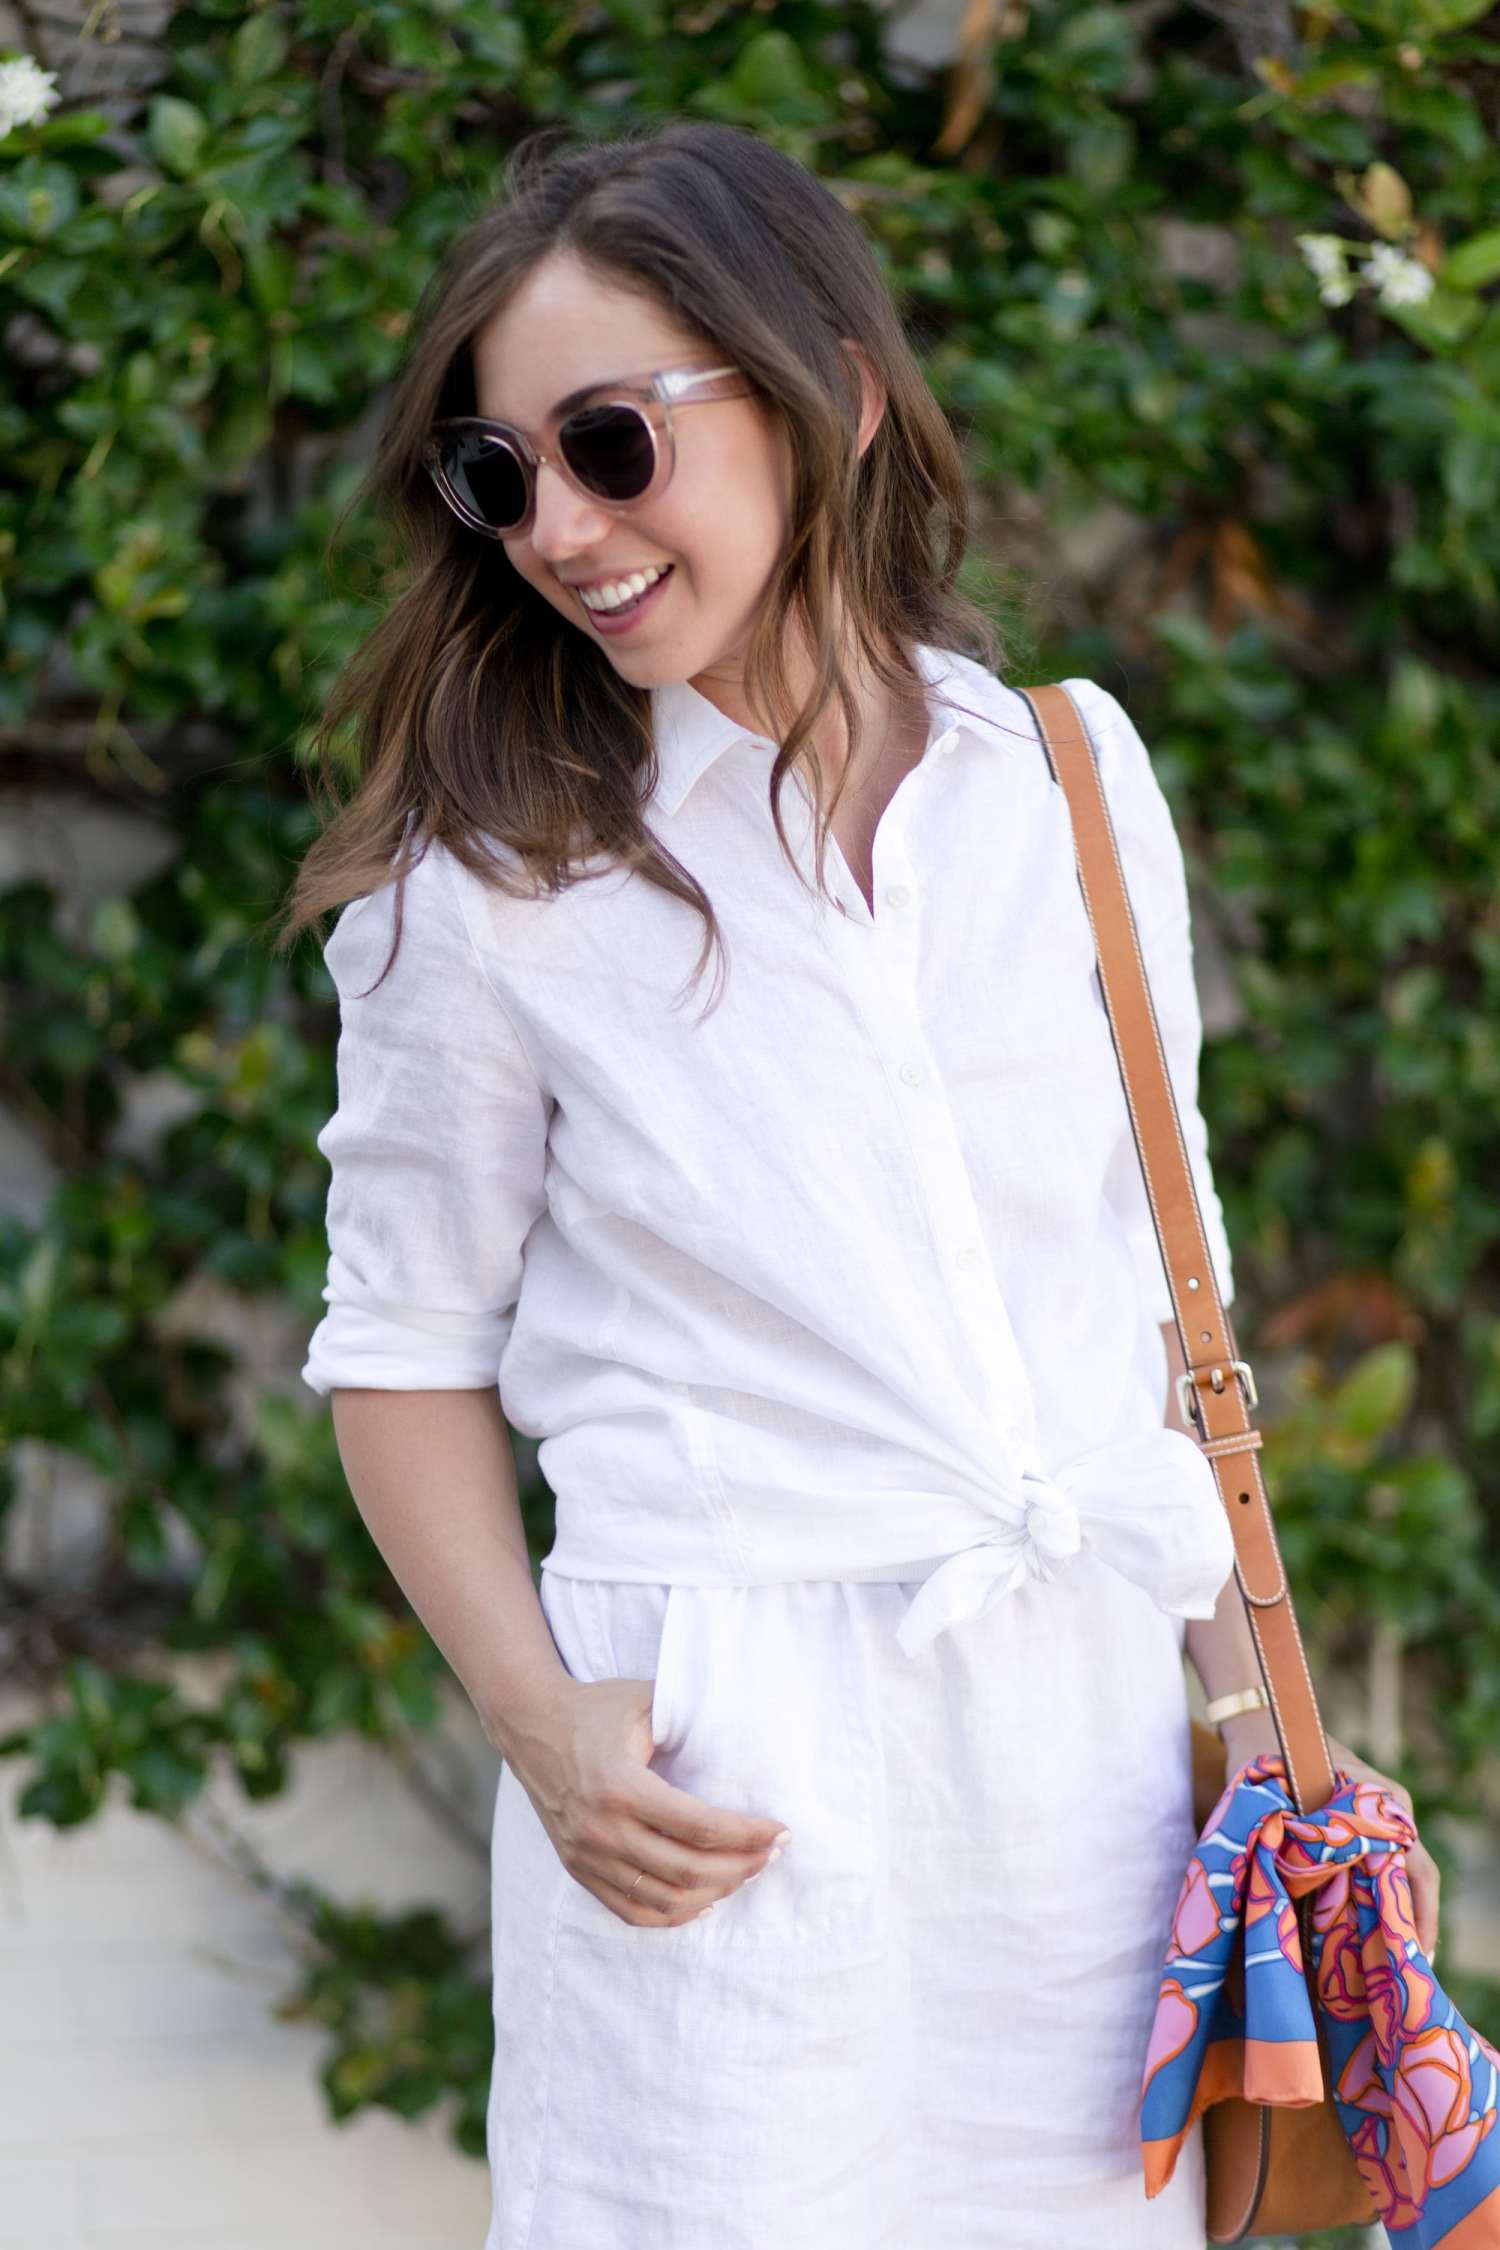 White Linen Shirt and Bright colored scarf